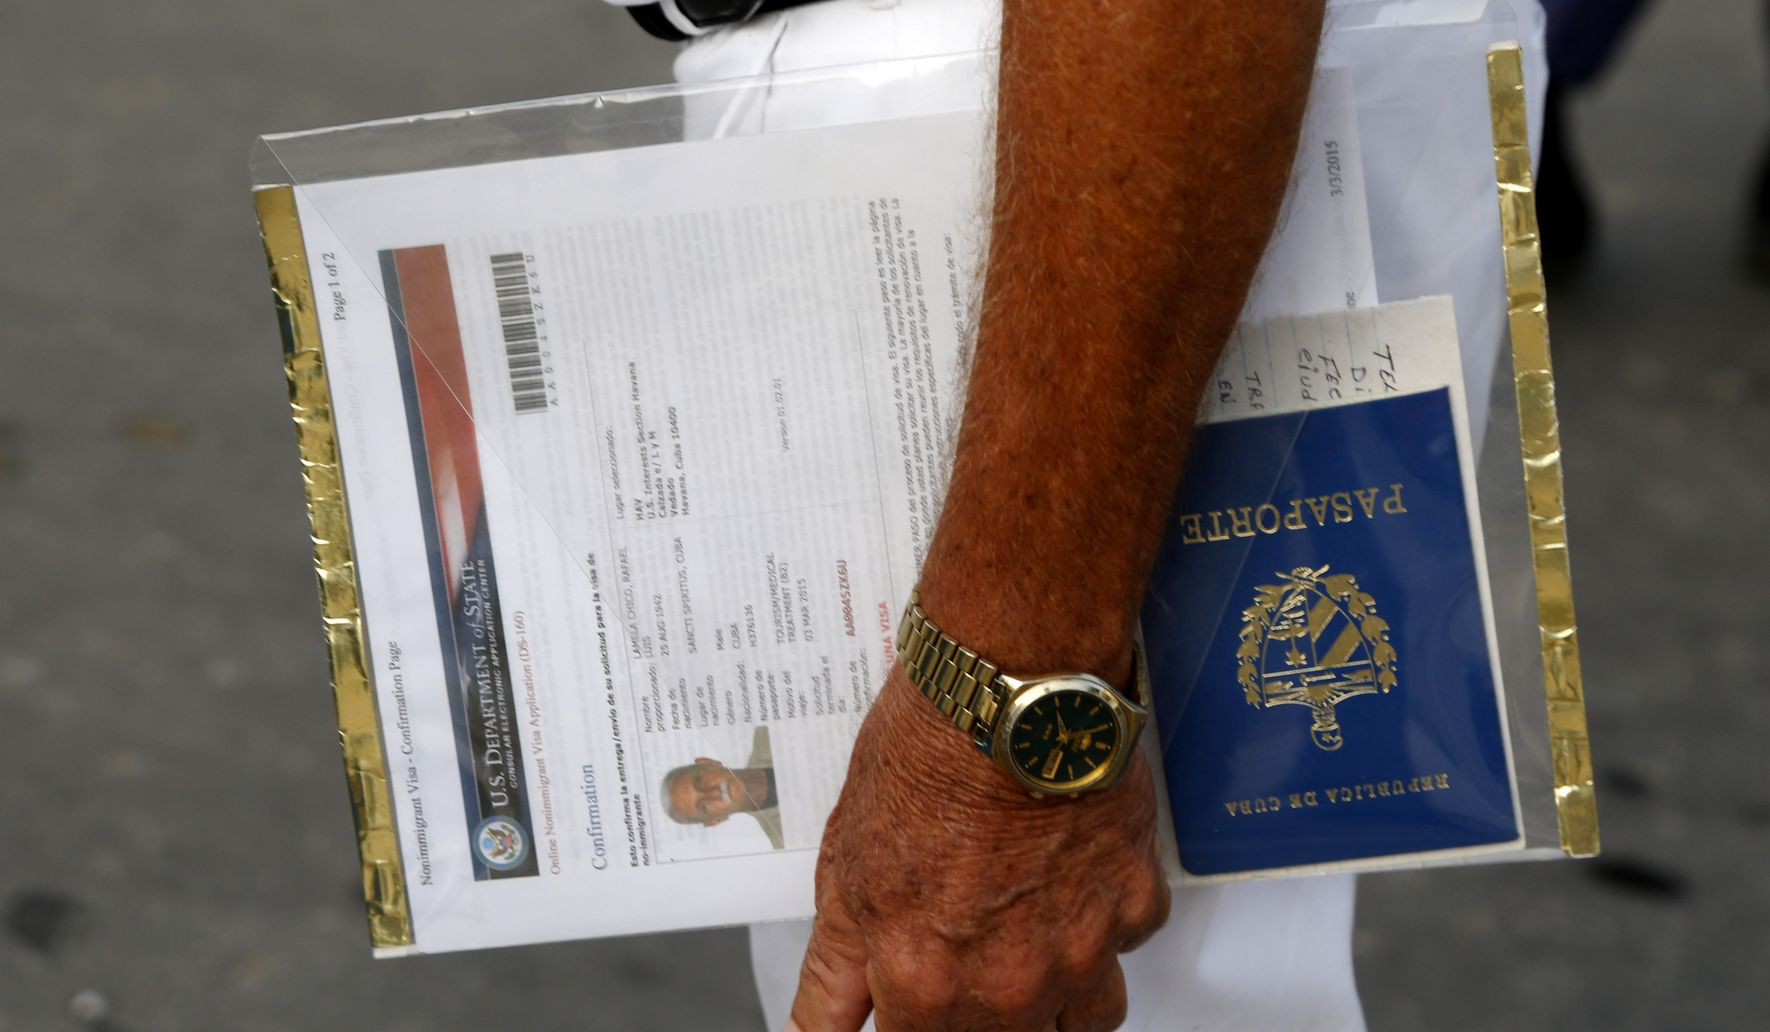 State Department employee sentenced for selling visas at up